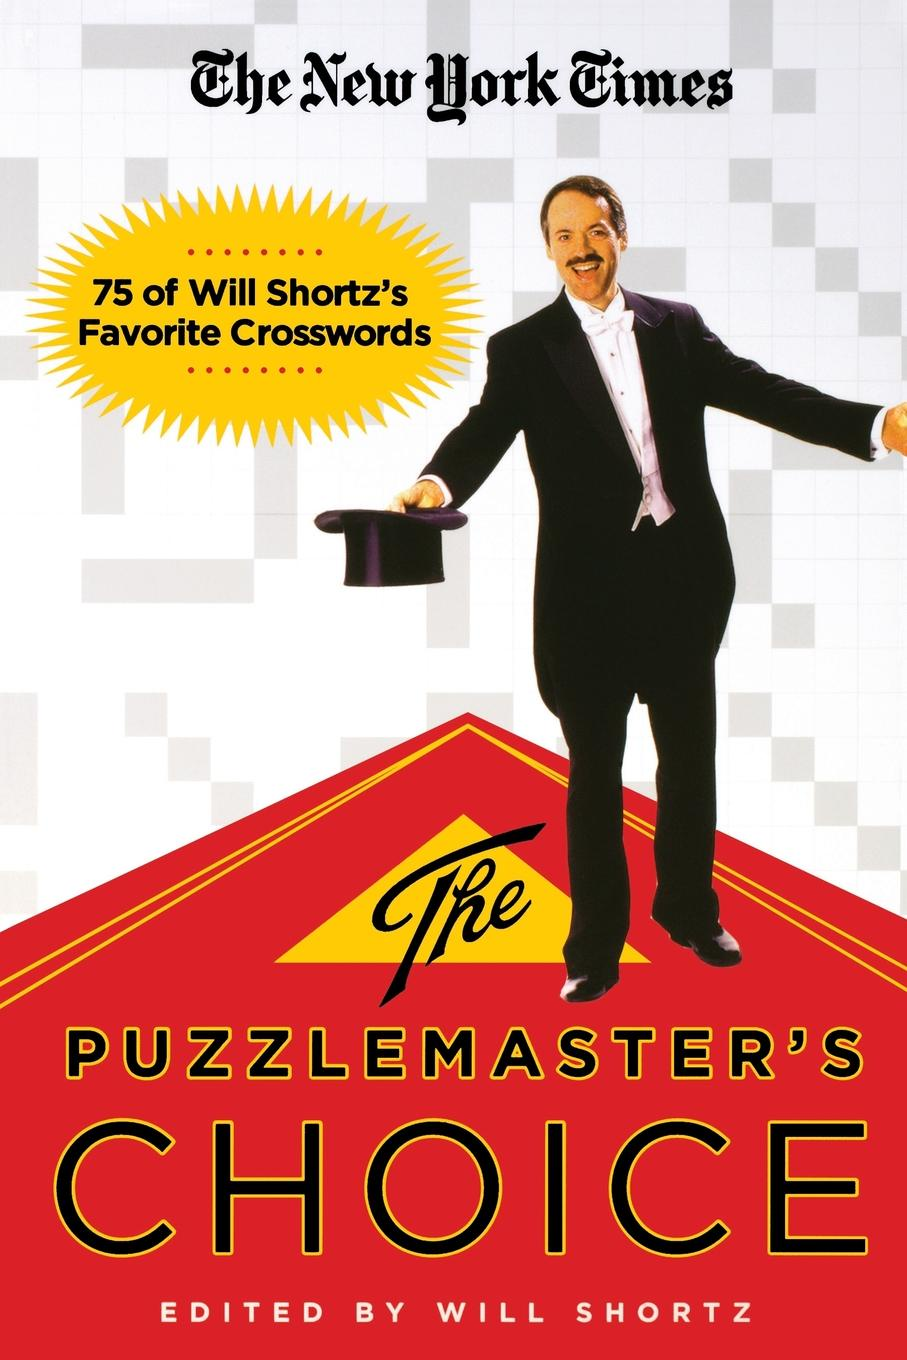 The New York Times The Puzzlemaster's Choice. 75 of Will Shortz's Favorite Crosswords abby green the sultan s choice